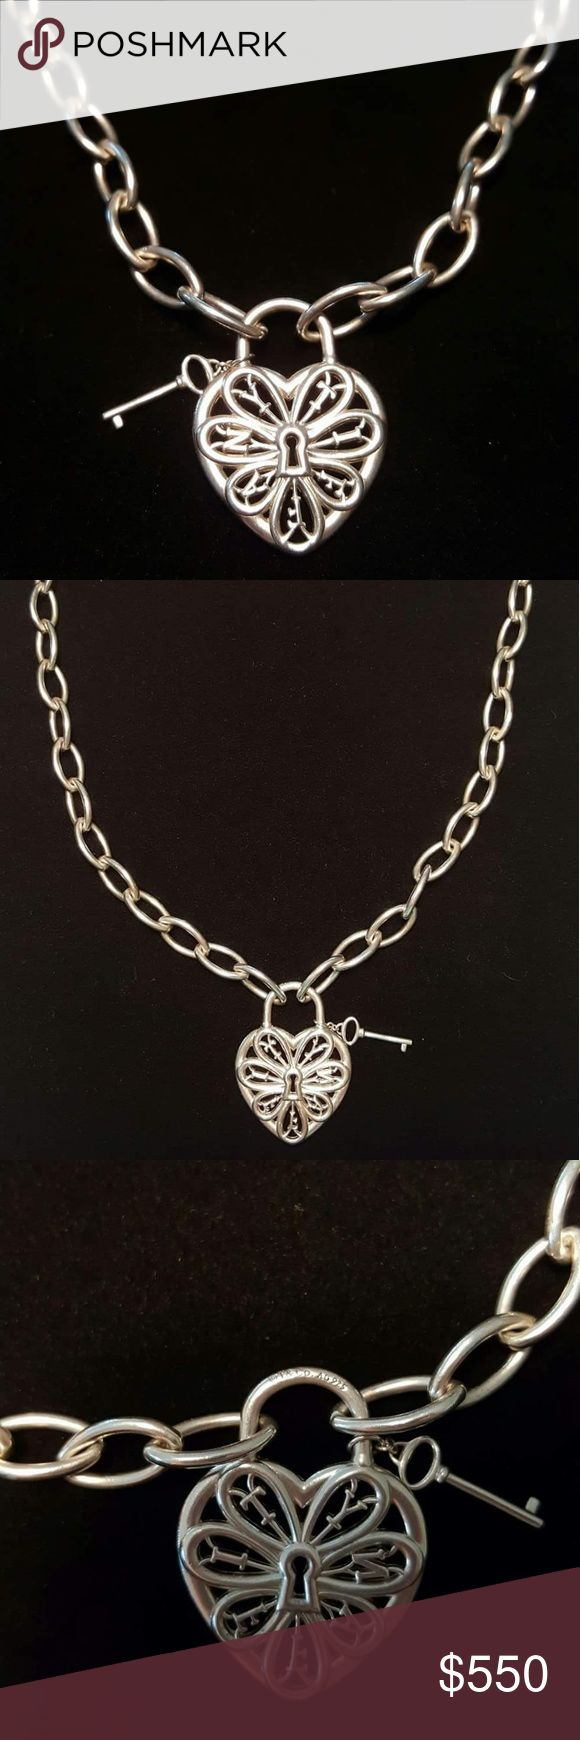 Tiffany & Co. Filigree Heart Necklace Immaculate,  showcase condition Tiffany & Co. Filigree Heart Necklace. Retired and no longer available.. Excellent price for this piece! Comes with box and pouch. Tiffany & Co. Jewelry